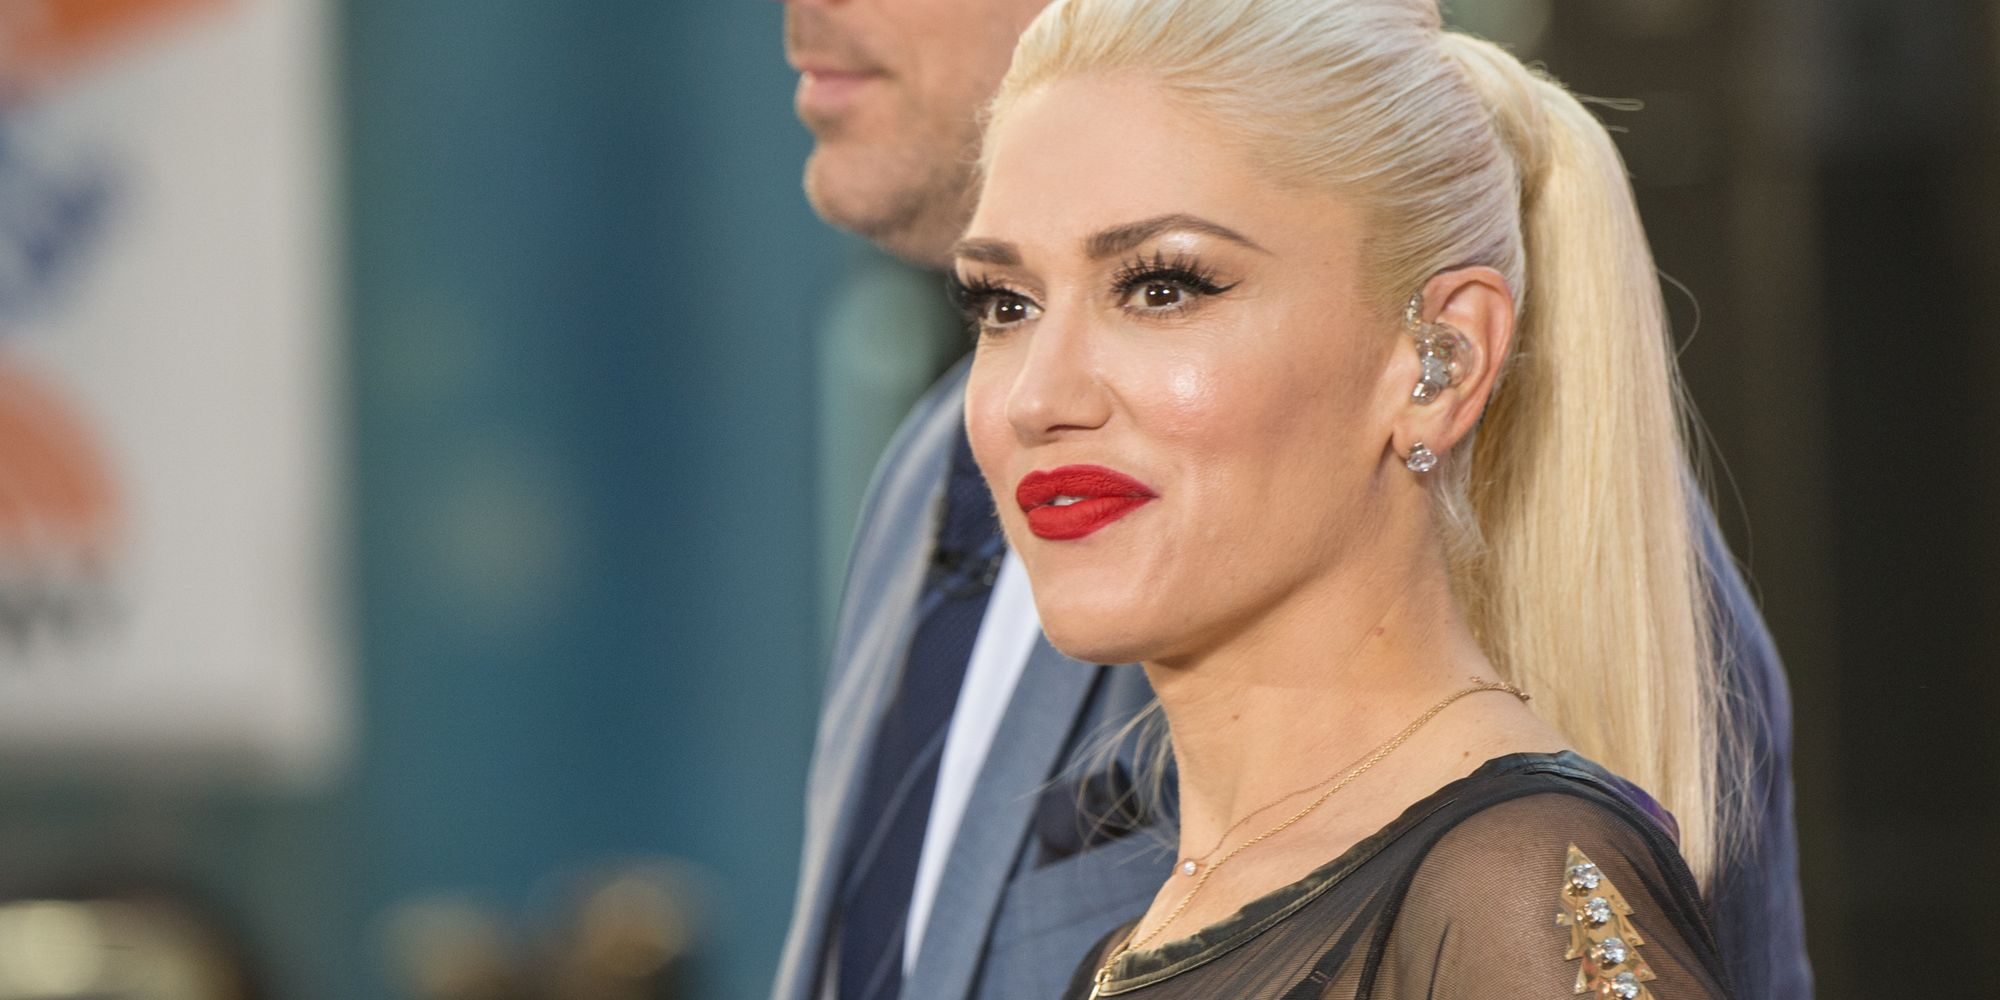 Gwen Stefani Gets Teary-Eyed While Chatting About Her Love Life Struggles